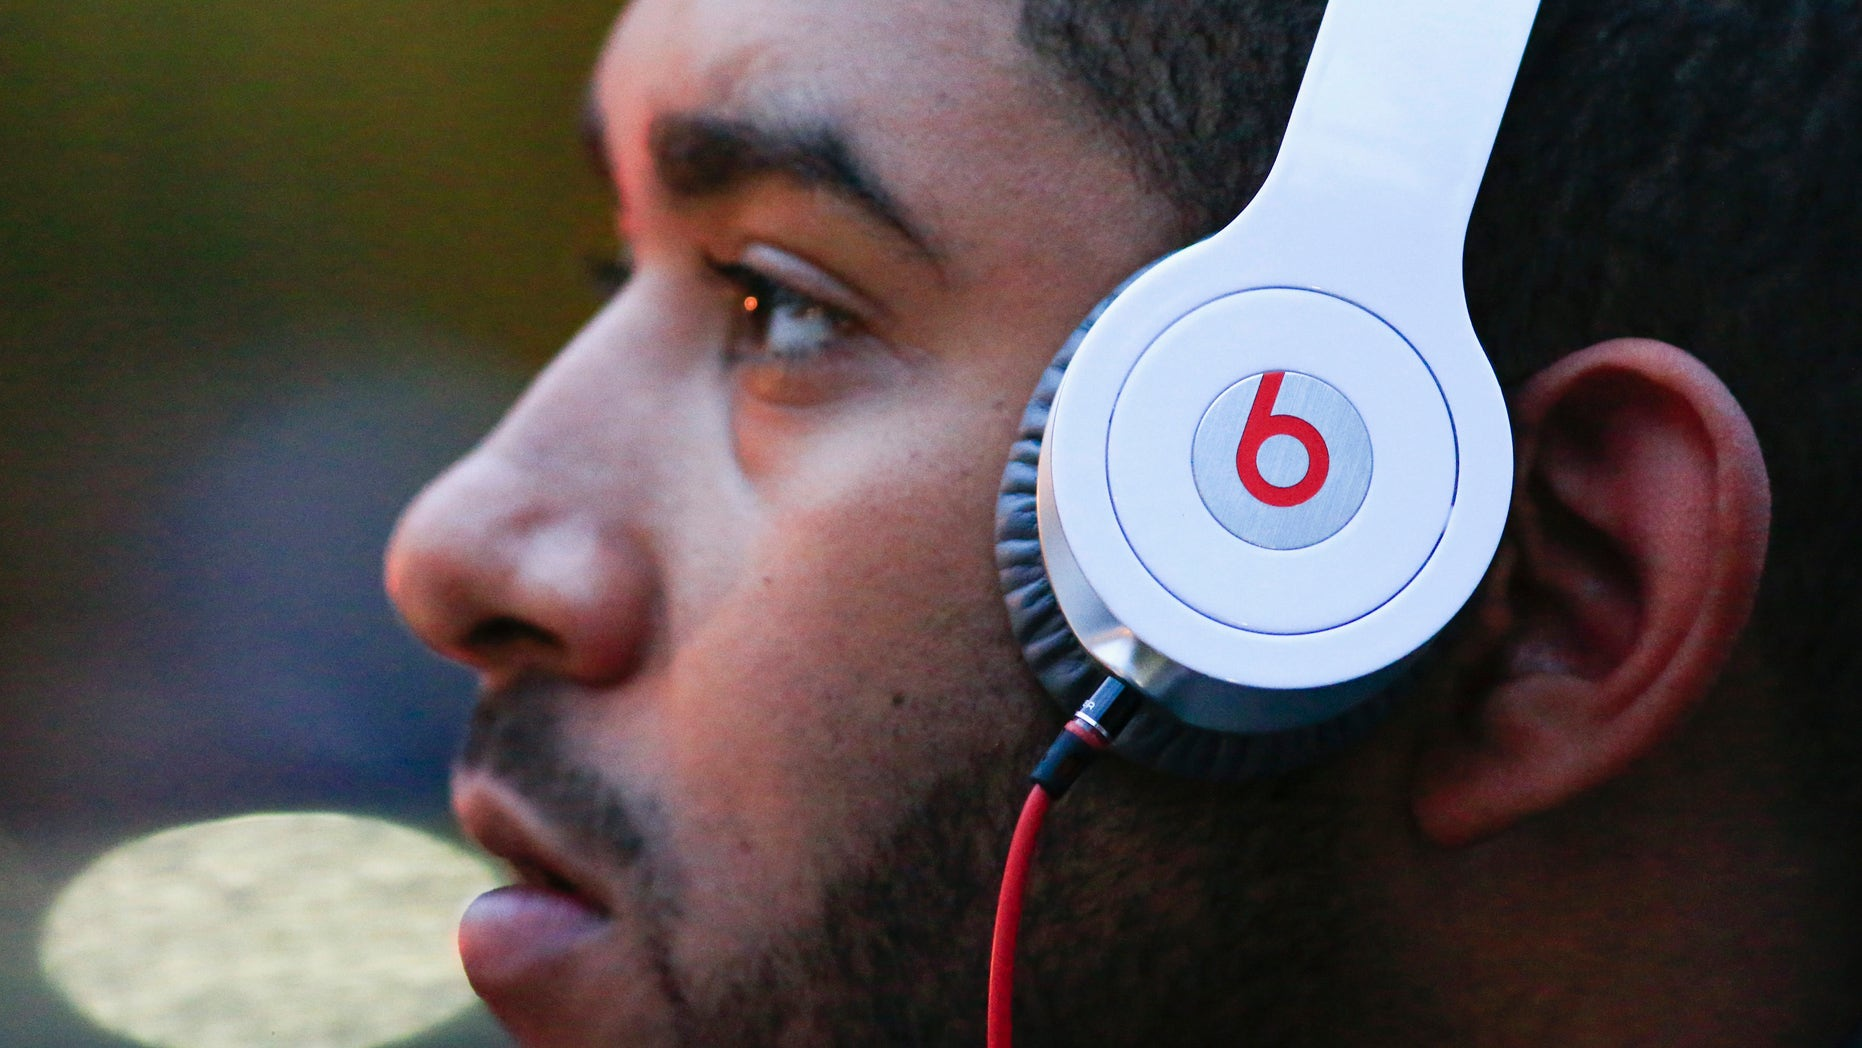 A man listens to Beats brand headphones on a street in New York, May 29, 2014. (REUTERS/Eduardo Munoz)